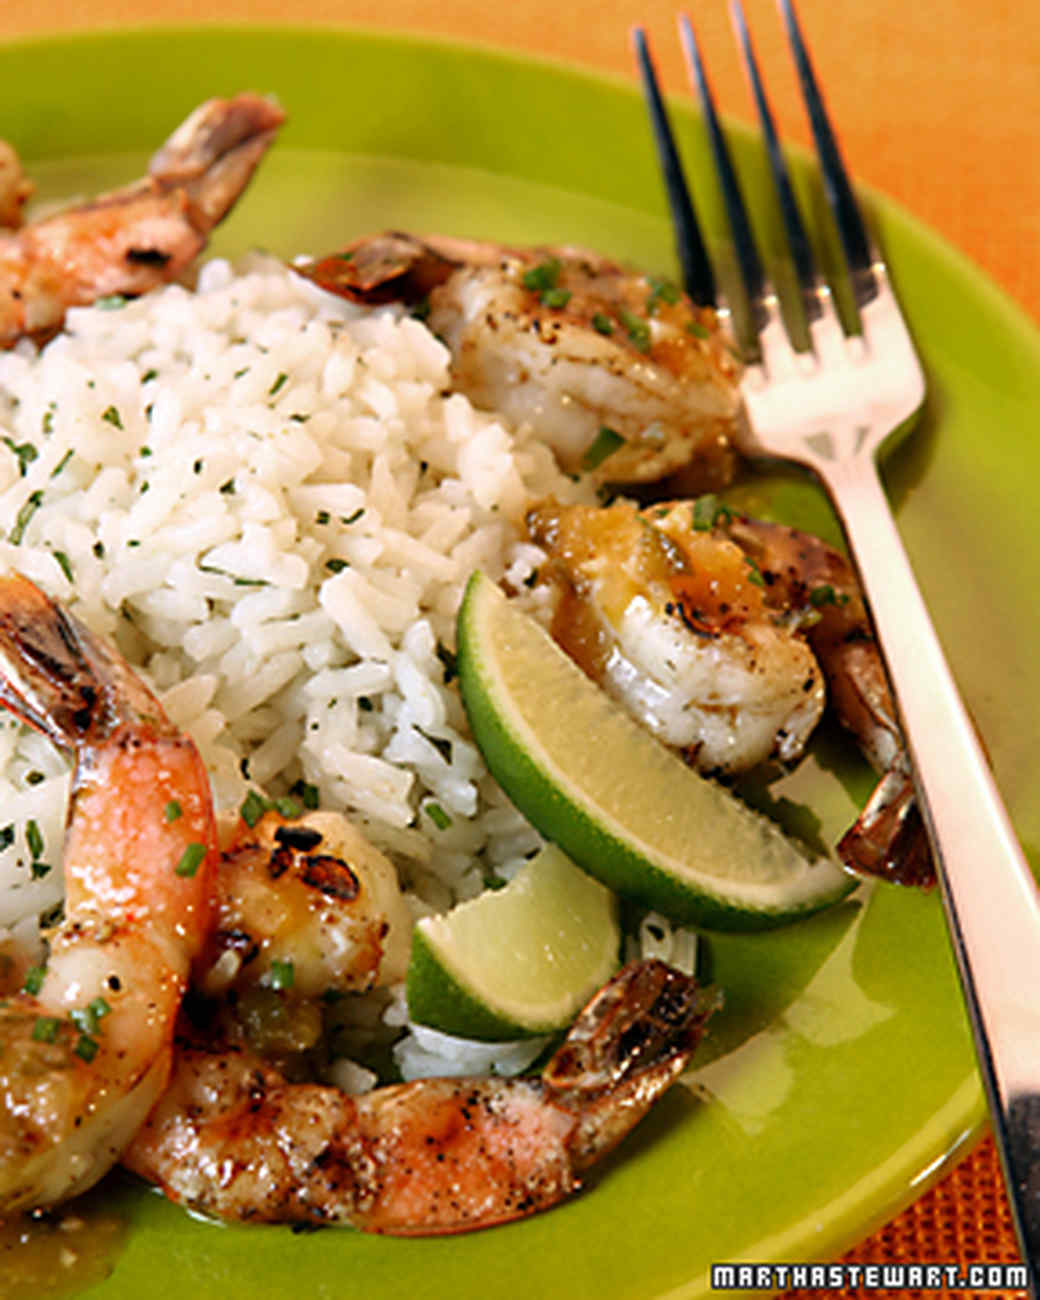 Simple Supper: Tequila-Orange Grilled Shrimp Recipe & Video | Martha ...